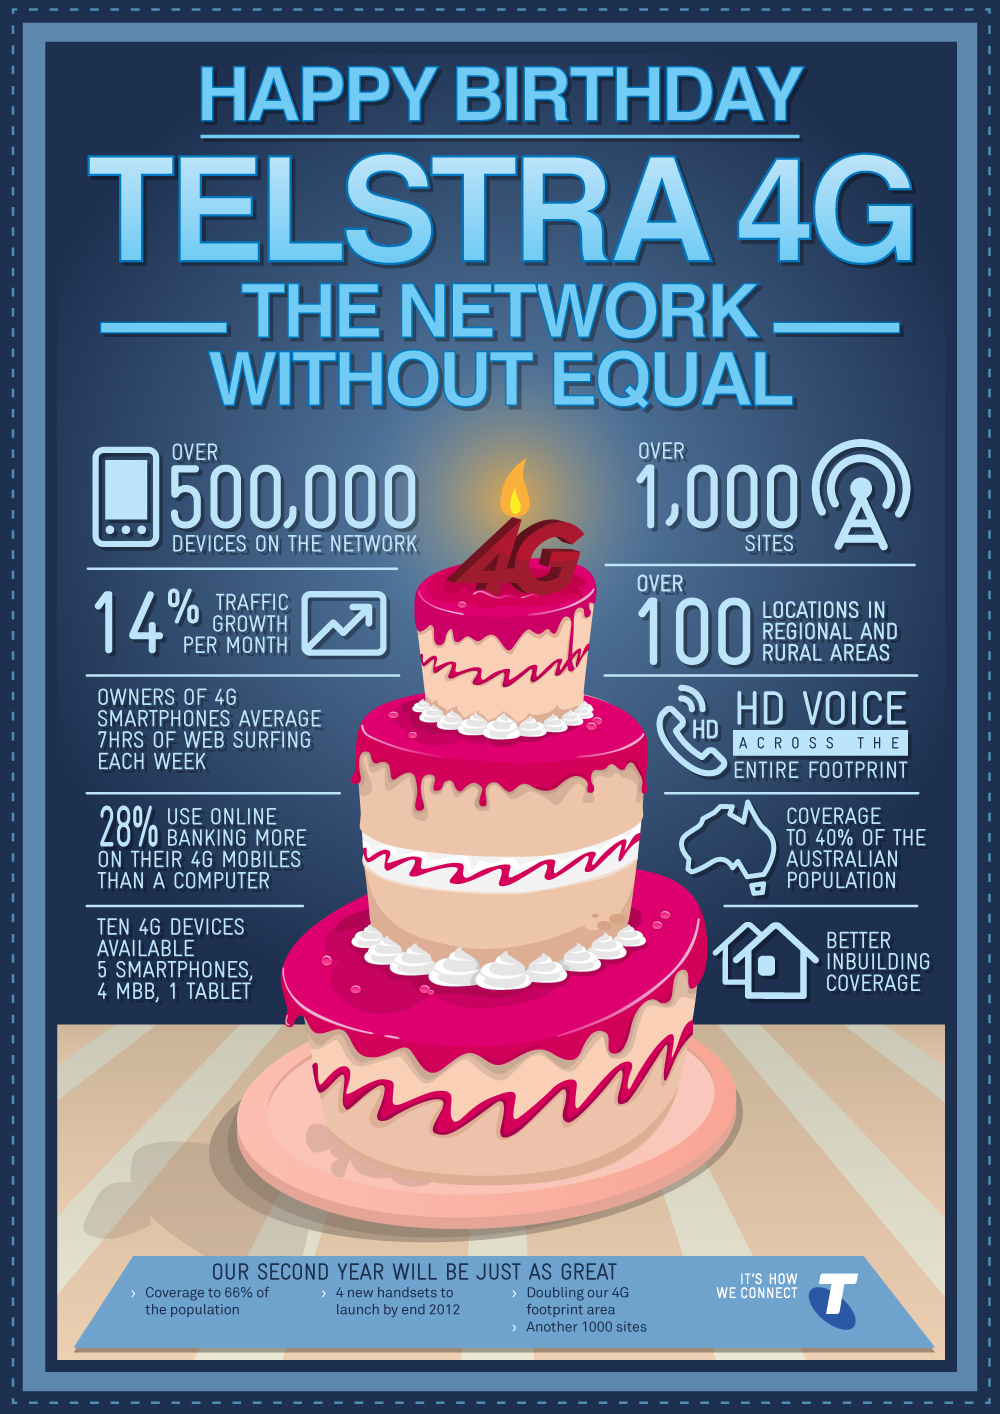 Happy 1st Birthday 4g  Visual. Seattle Magazine Best Restaurants. Software For Inventory And Sales. Trade In Laptop For New Laptop. Advantage Debt Management Psat Online Course. Family Law Attorneys Jacksonville Nc. Depression Can Be Cured Prototype Sheet Metal. Global Venture Capital Firm Dr Seuss College. Network Performance Test Tool